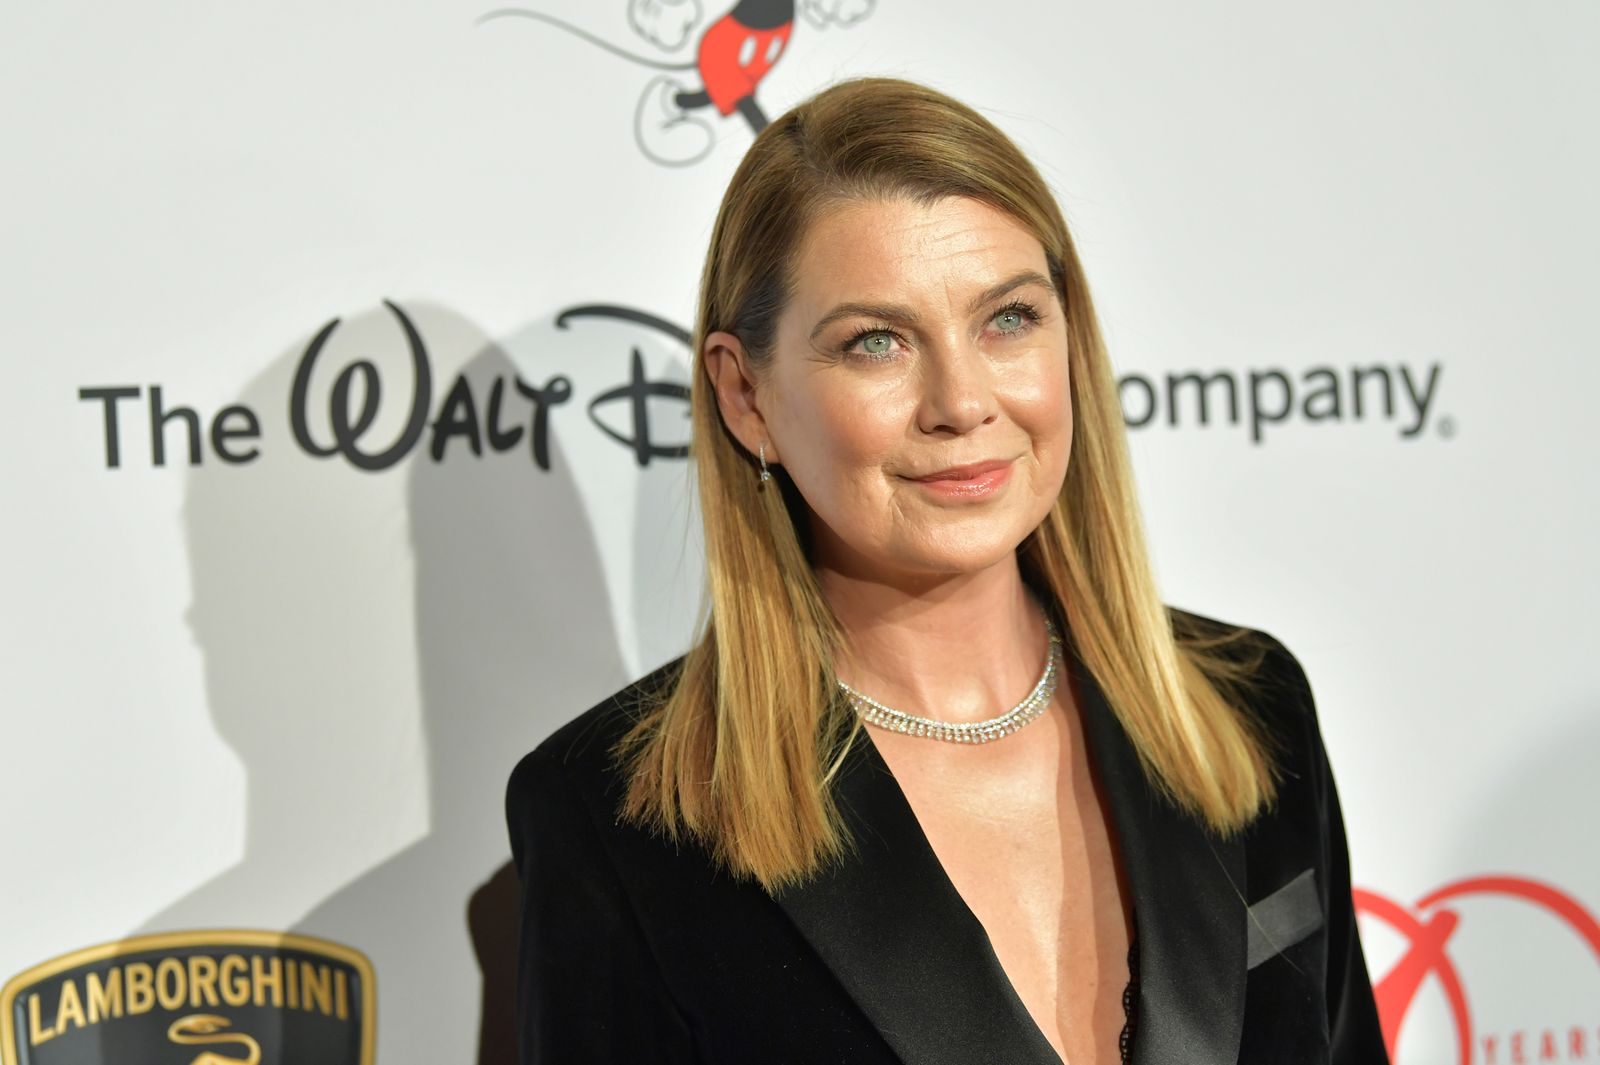 """Save the Children's """"Centennial Celebration: Once In A Lifetime"""" Presented By The Walt Disney Company - Arrivals"""